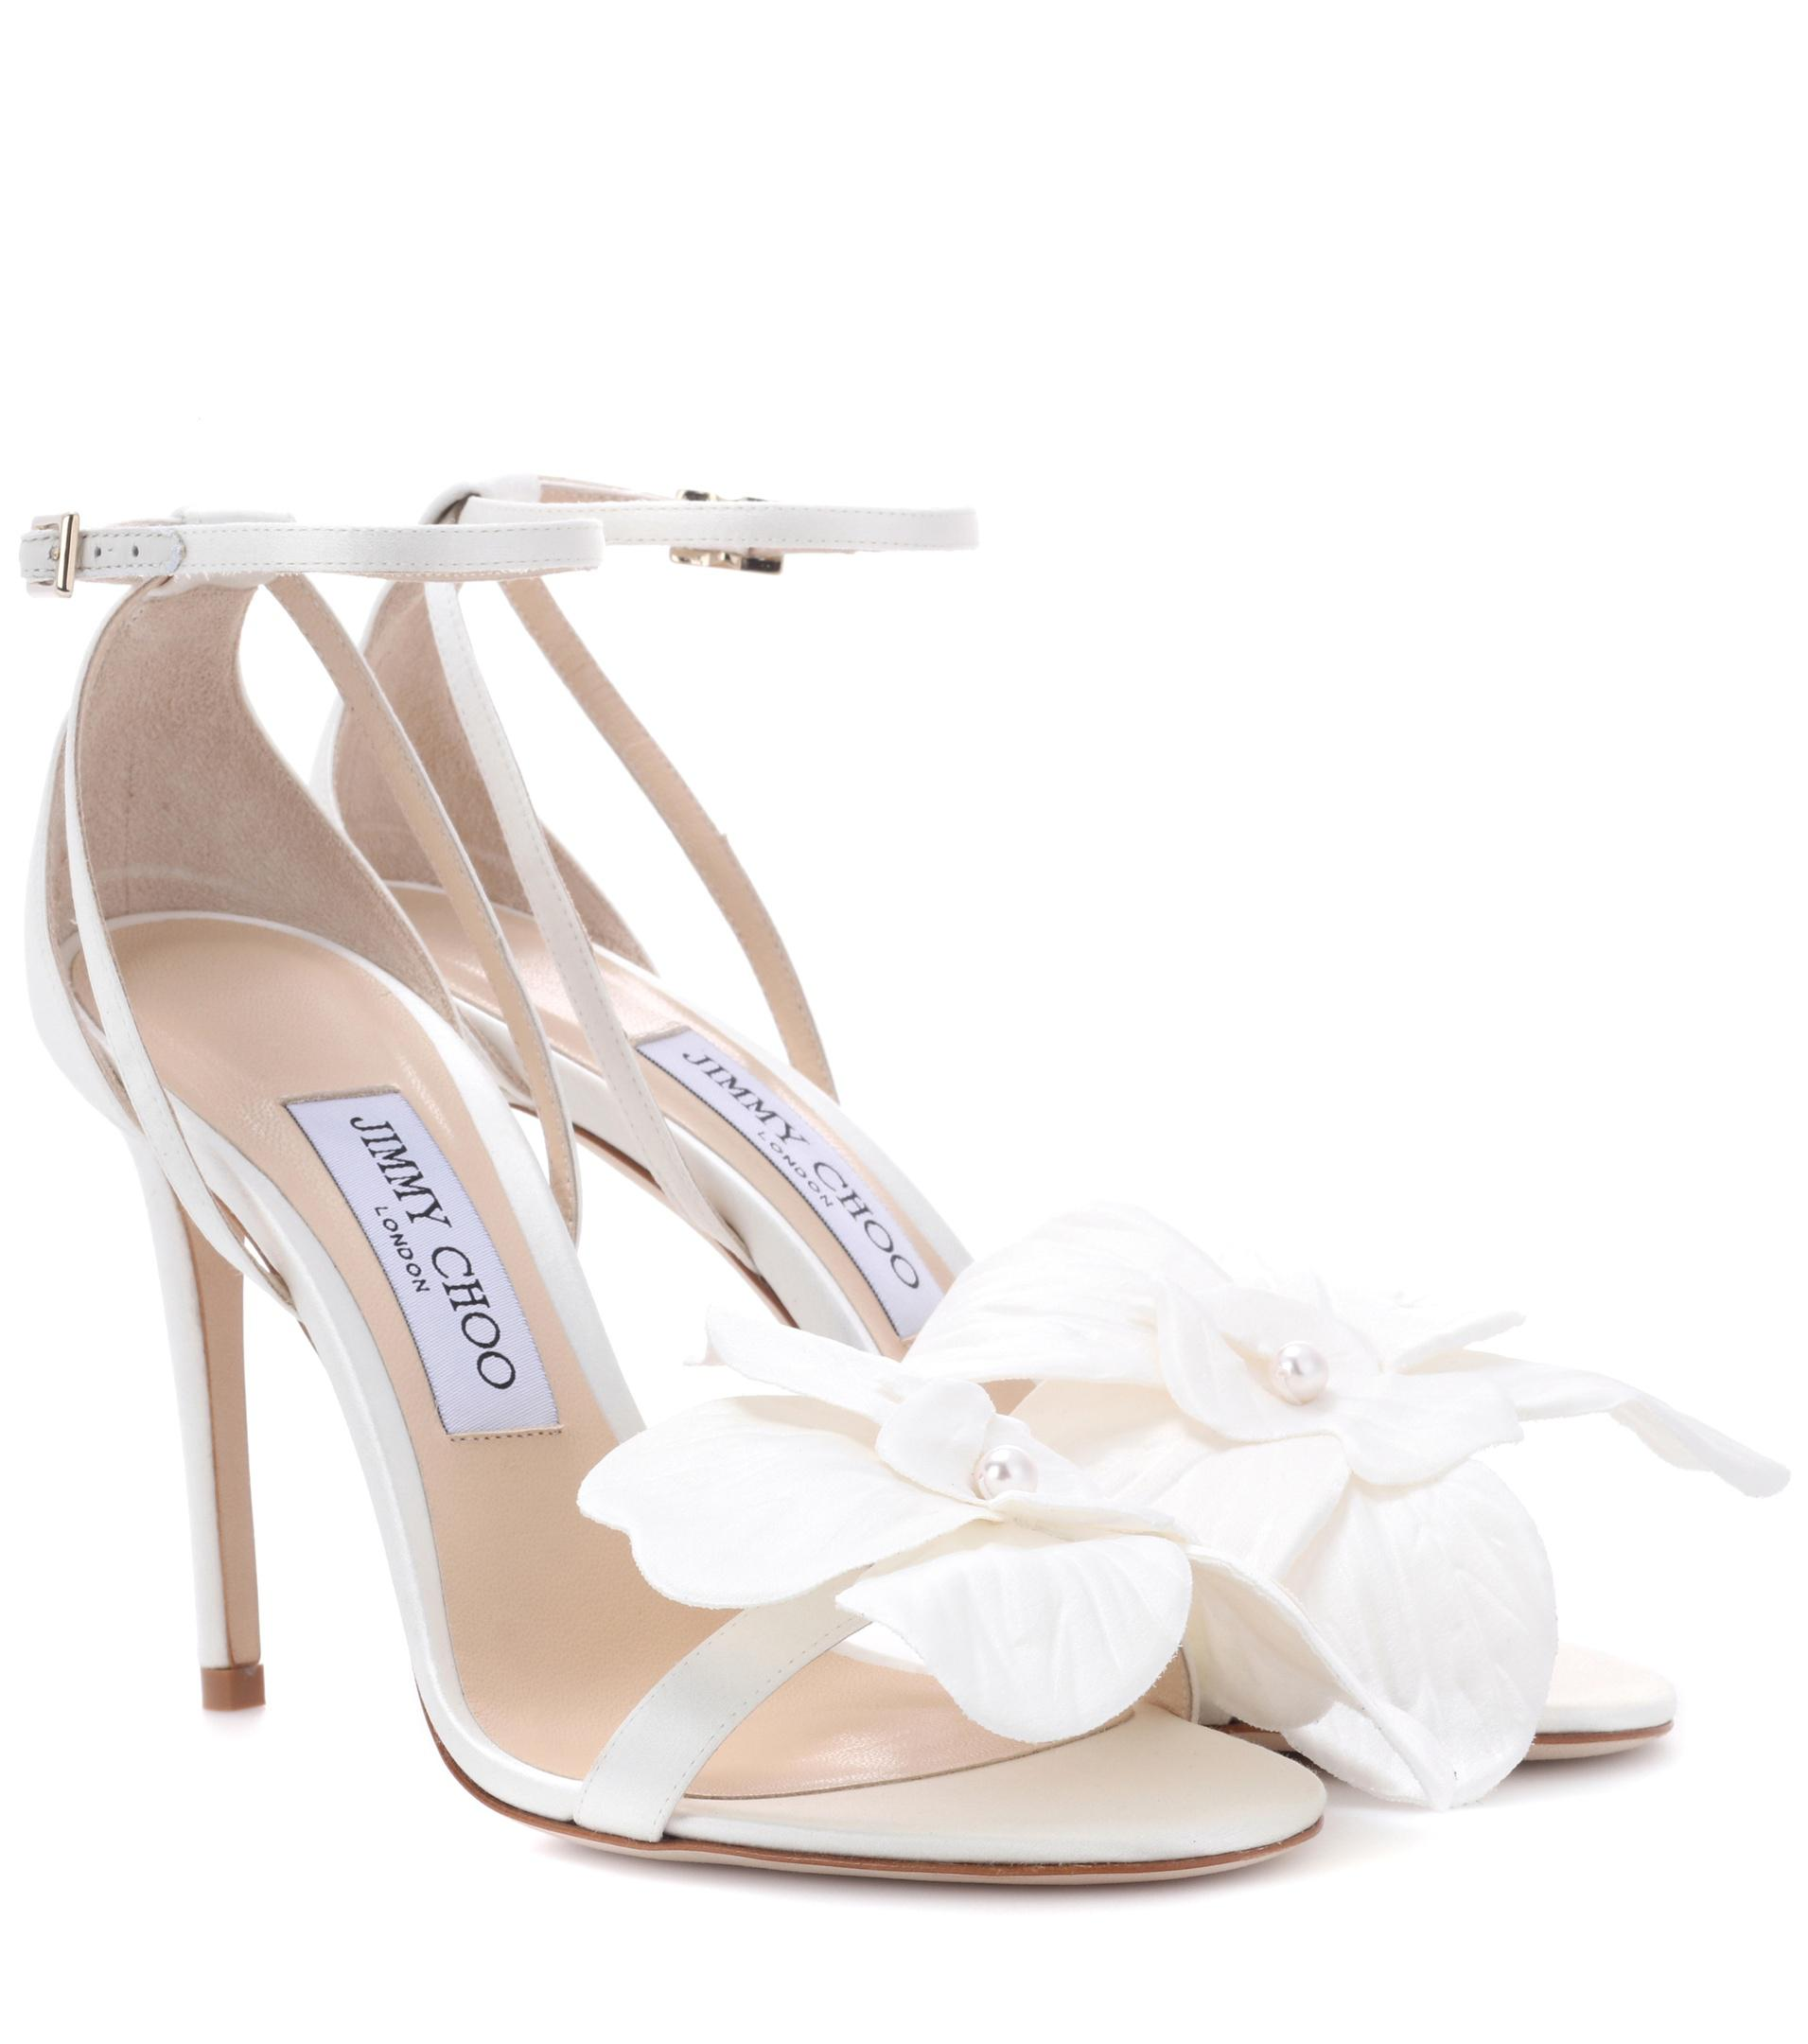 Sacora sandals - Metallic Jimmy Choo London AaAZFdB